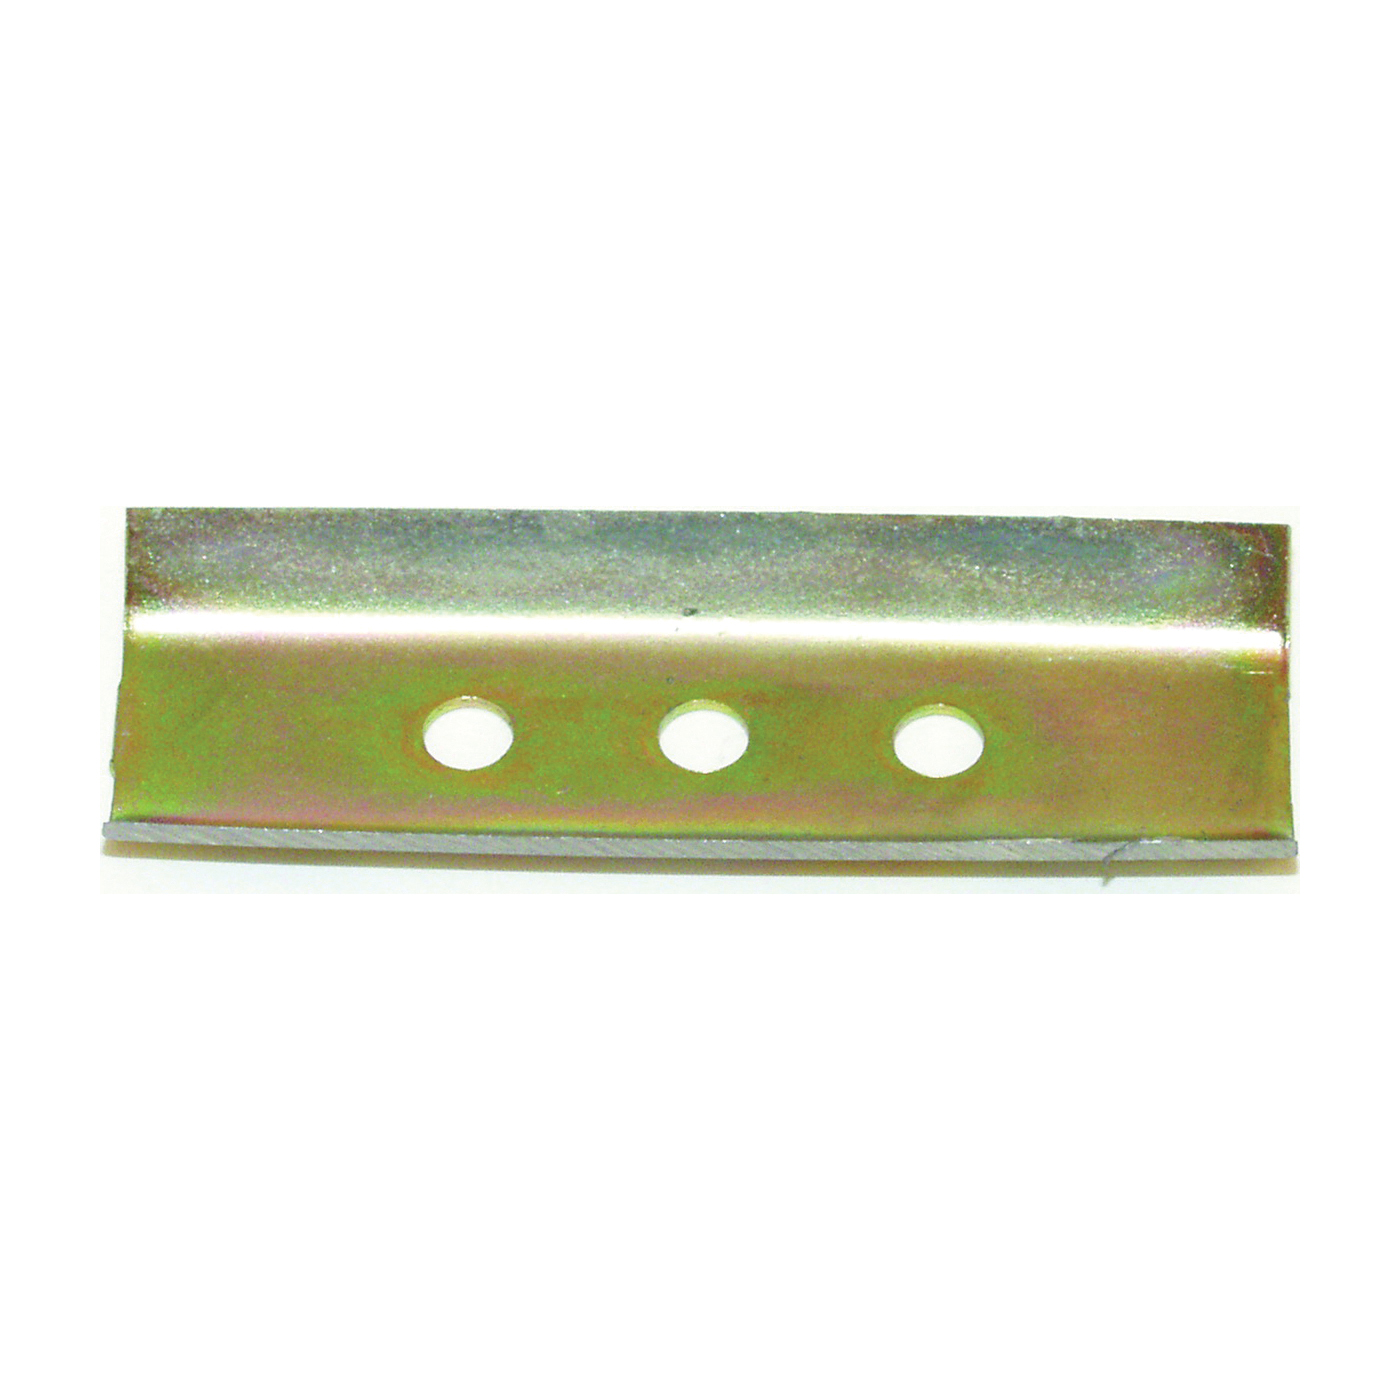 Picture of HYDE 11100 Paint Scraper Blade, Double-Edged Blade, 2-1/2 in W Blade, HCS Blade